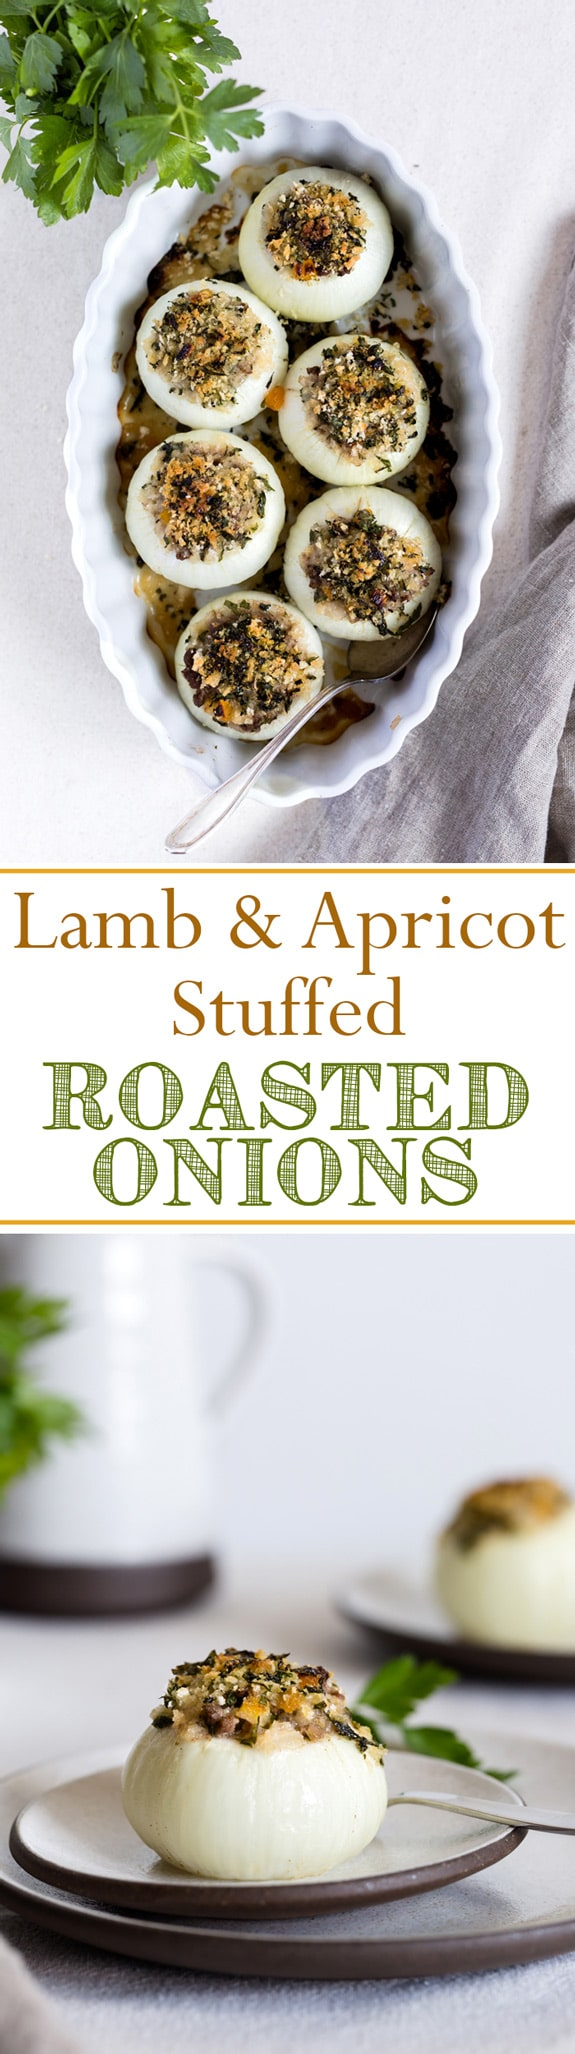 Lamb and Apricot Stuffed Roasted Onions - Vidalia Onions filled with lamb and apricot and baked in the oven. Great dinner recipe to make with fresh onions.